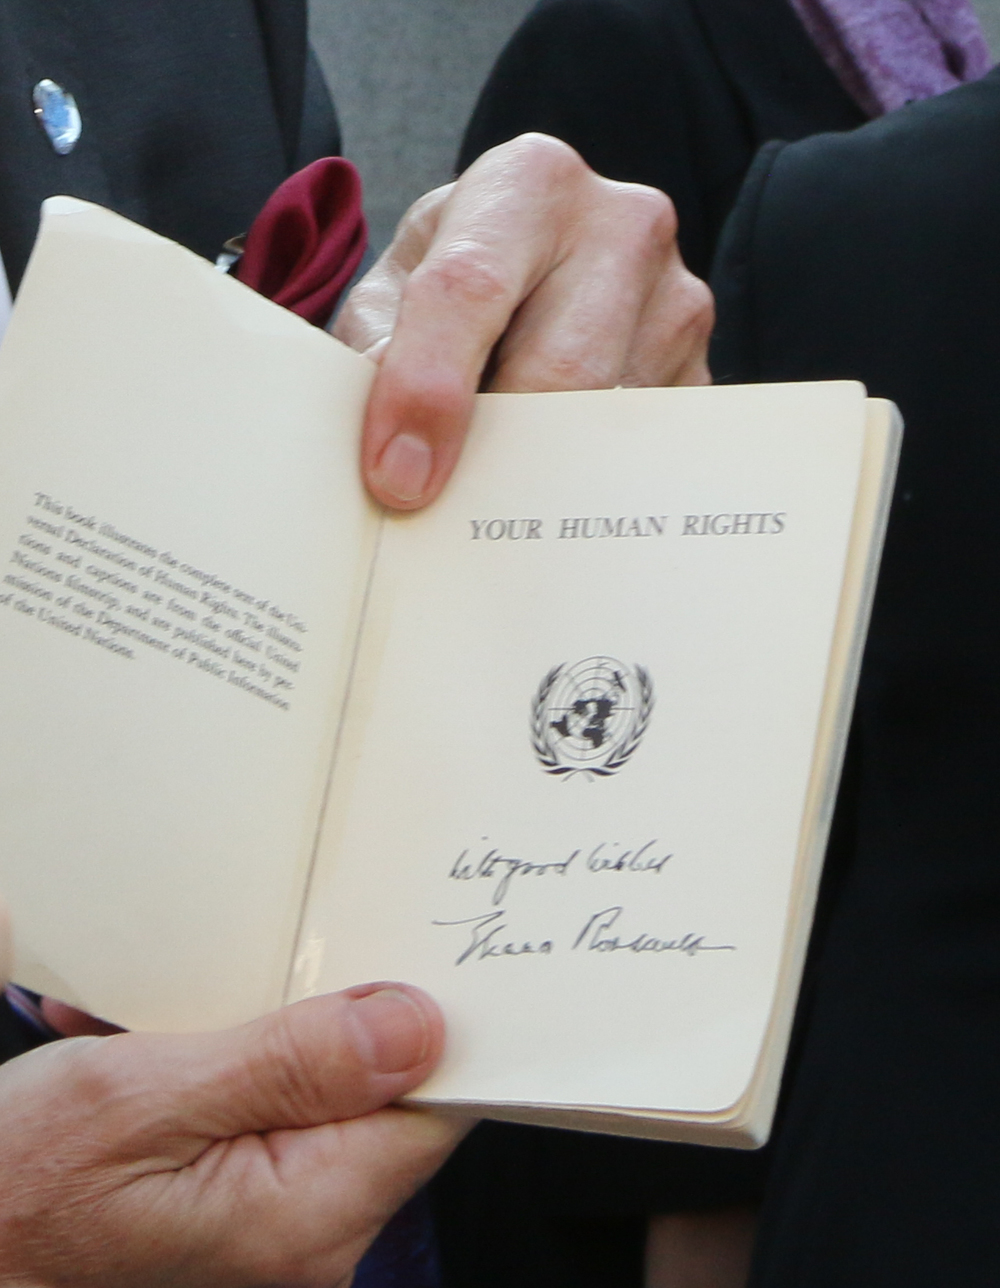 Eleanor Roosevelt's signature